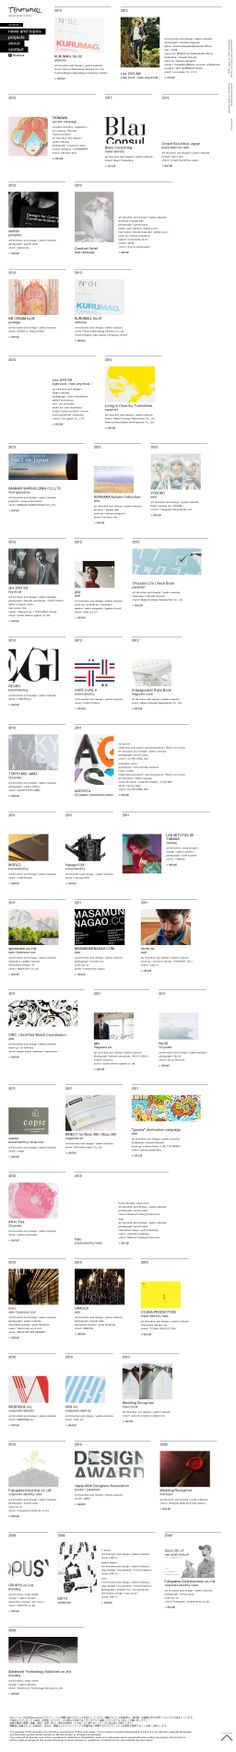 The website 'http://www.terminaldesign.jp/#projects' courtesy of @Pinstamatic (http://pinstamatic.com)